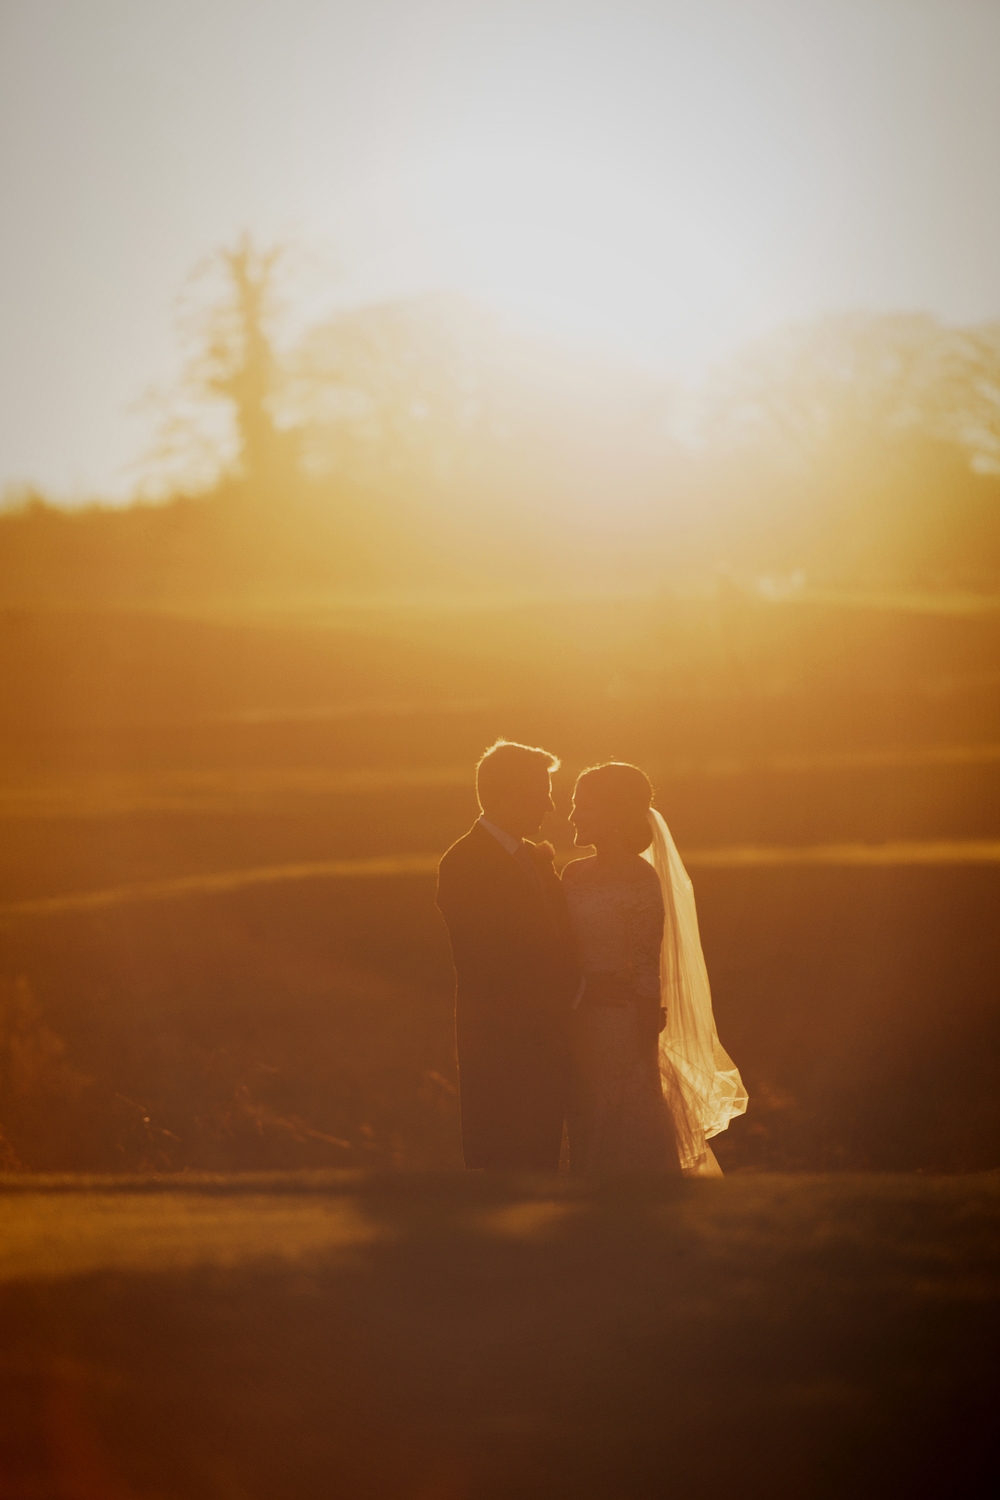 Carton_House_Wedding_Photography_Maynooth_Ireland_060.jpg